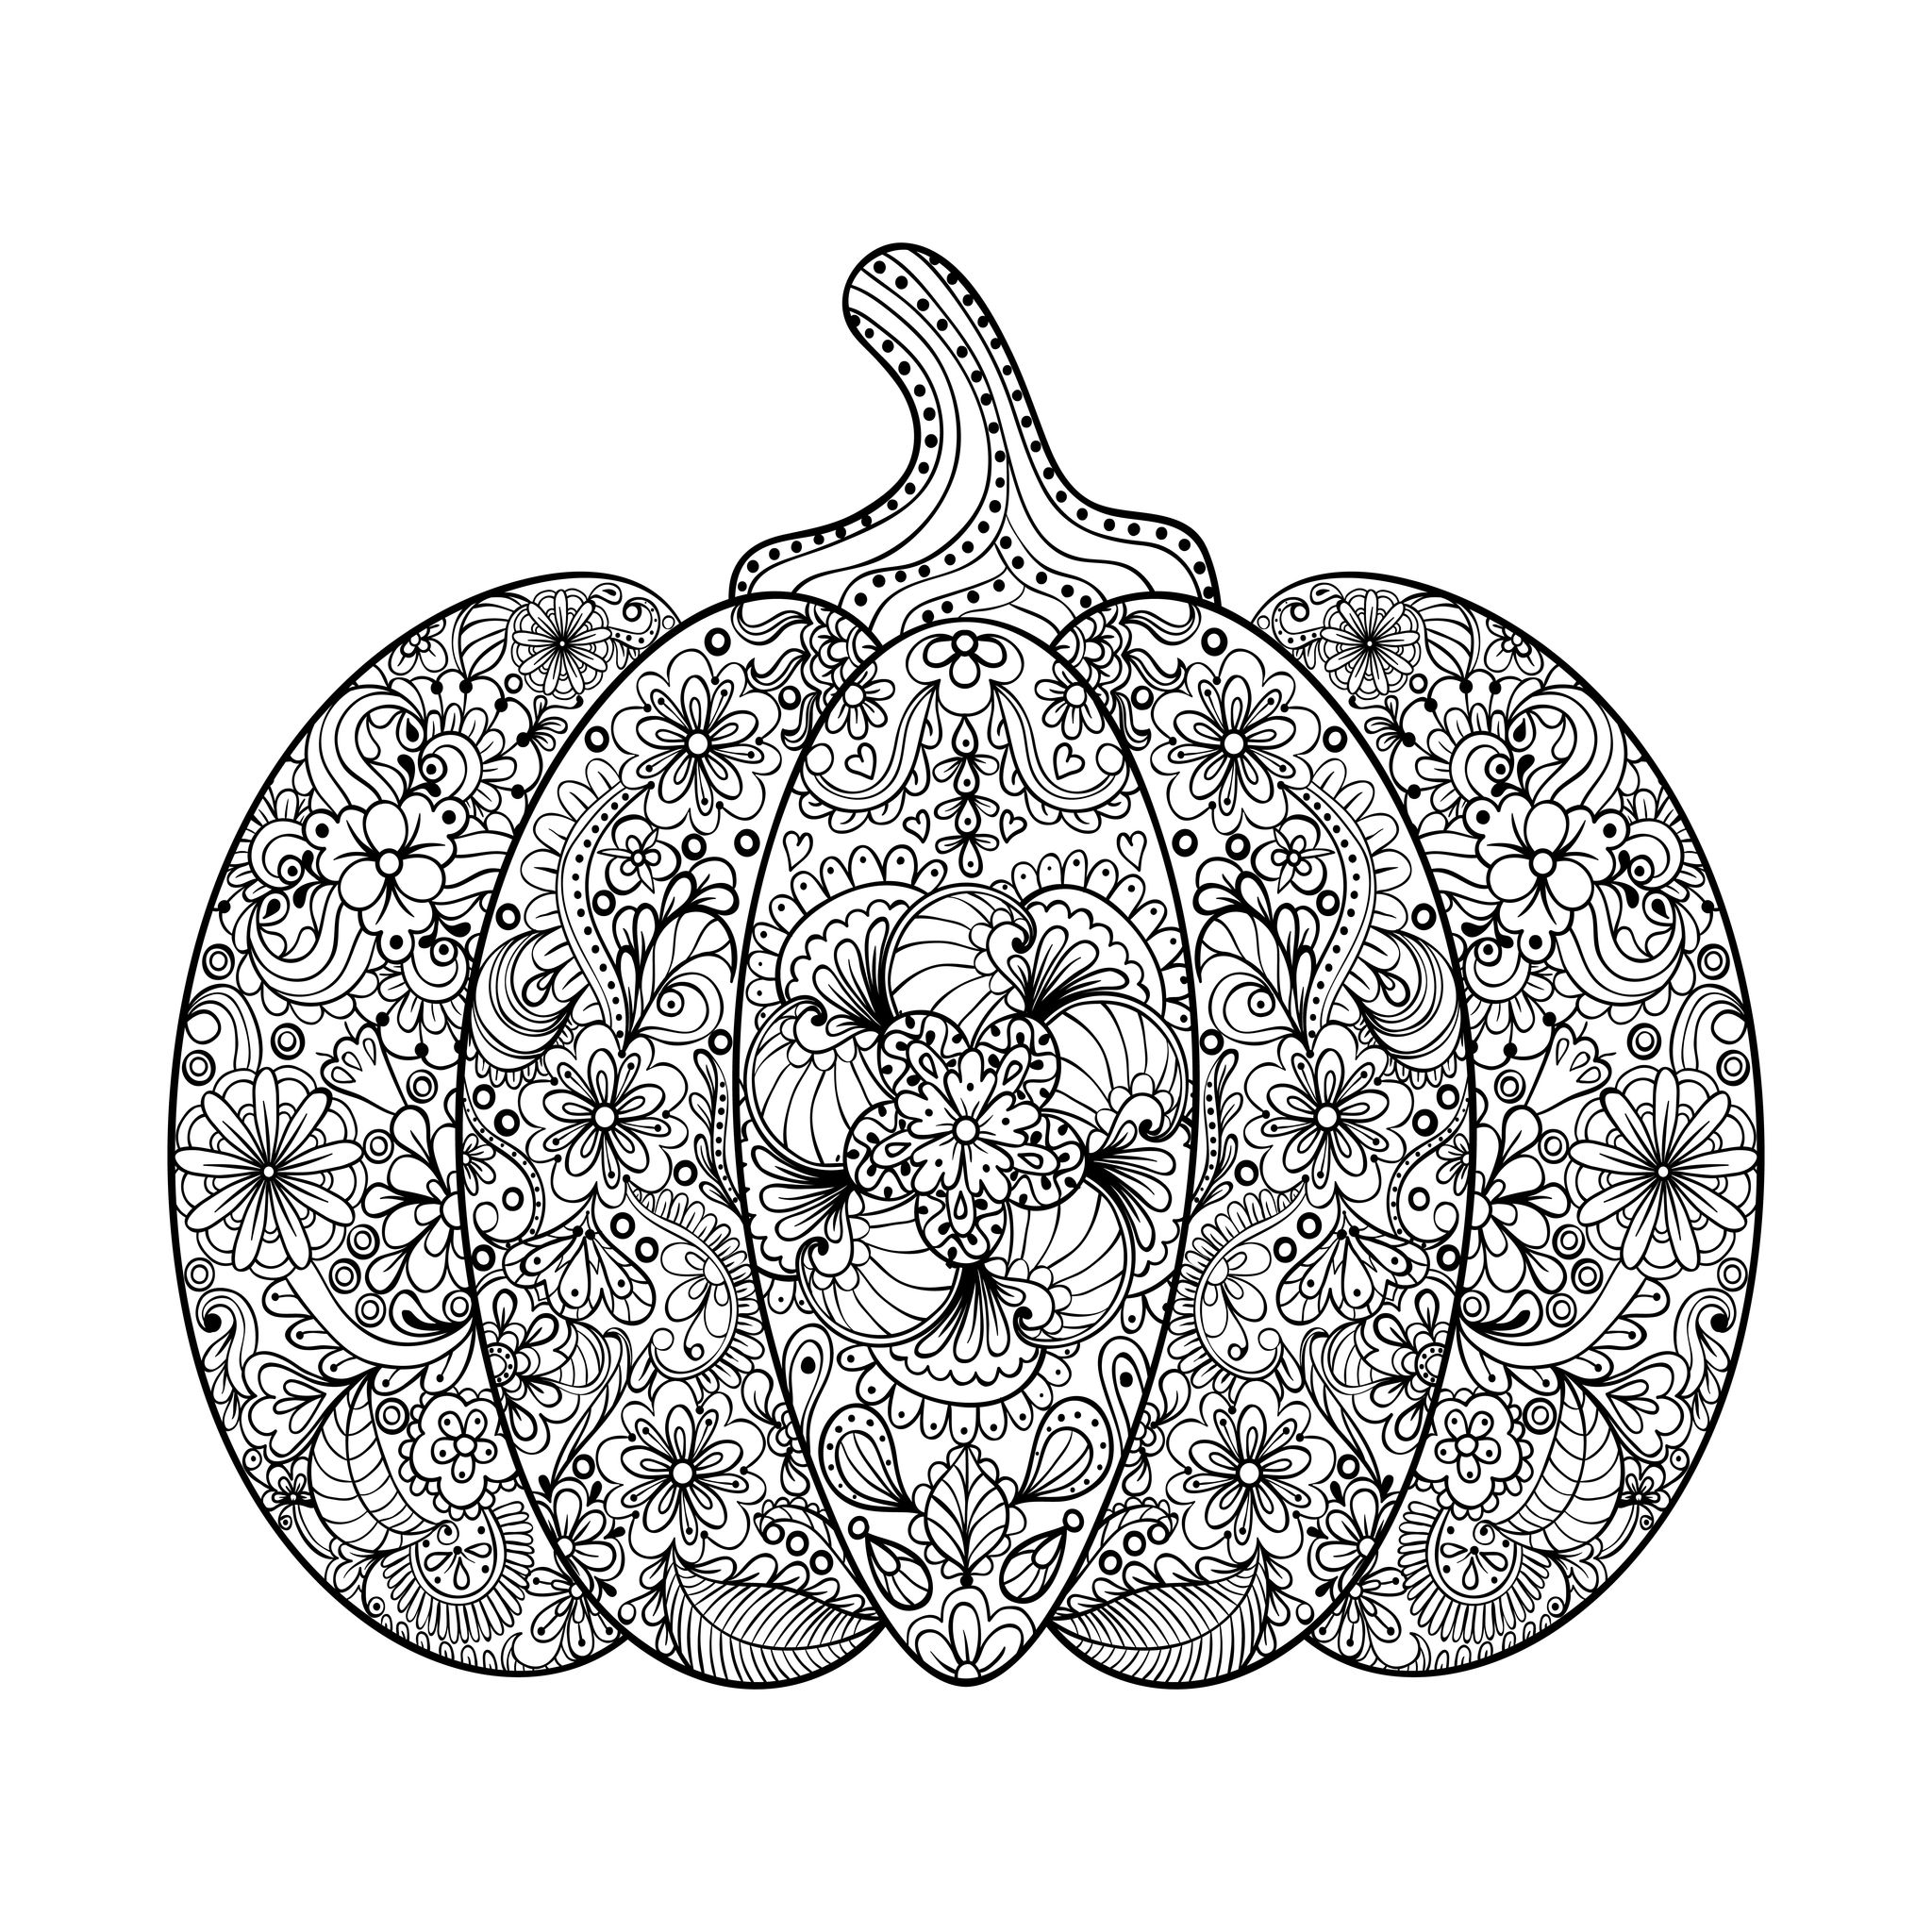 Halloween Coloring Pages For Adults Coloring halloween complex pumpkin with flowers and